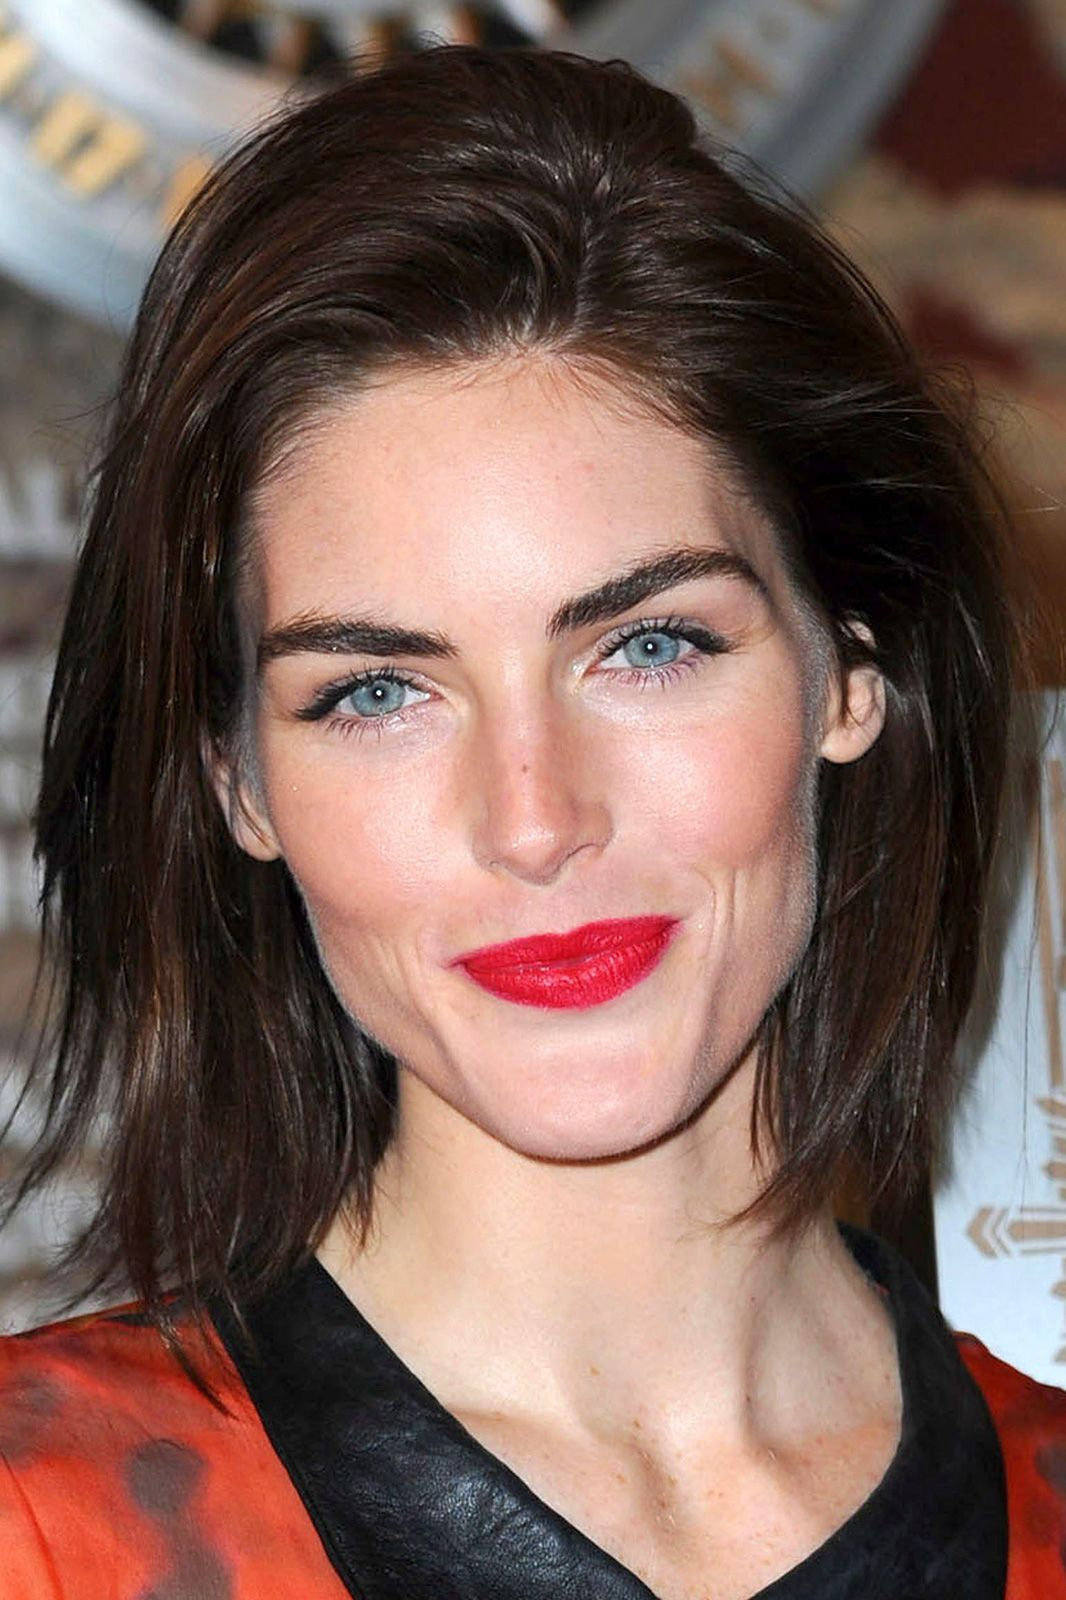 Watch Eyebrow Envy: The Best Celebrity Brows Throughout The Years video